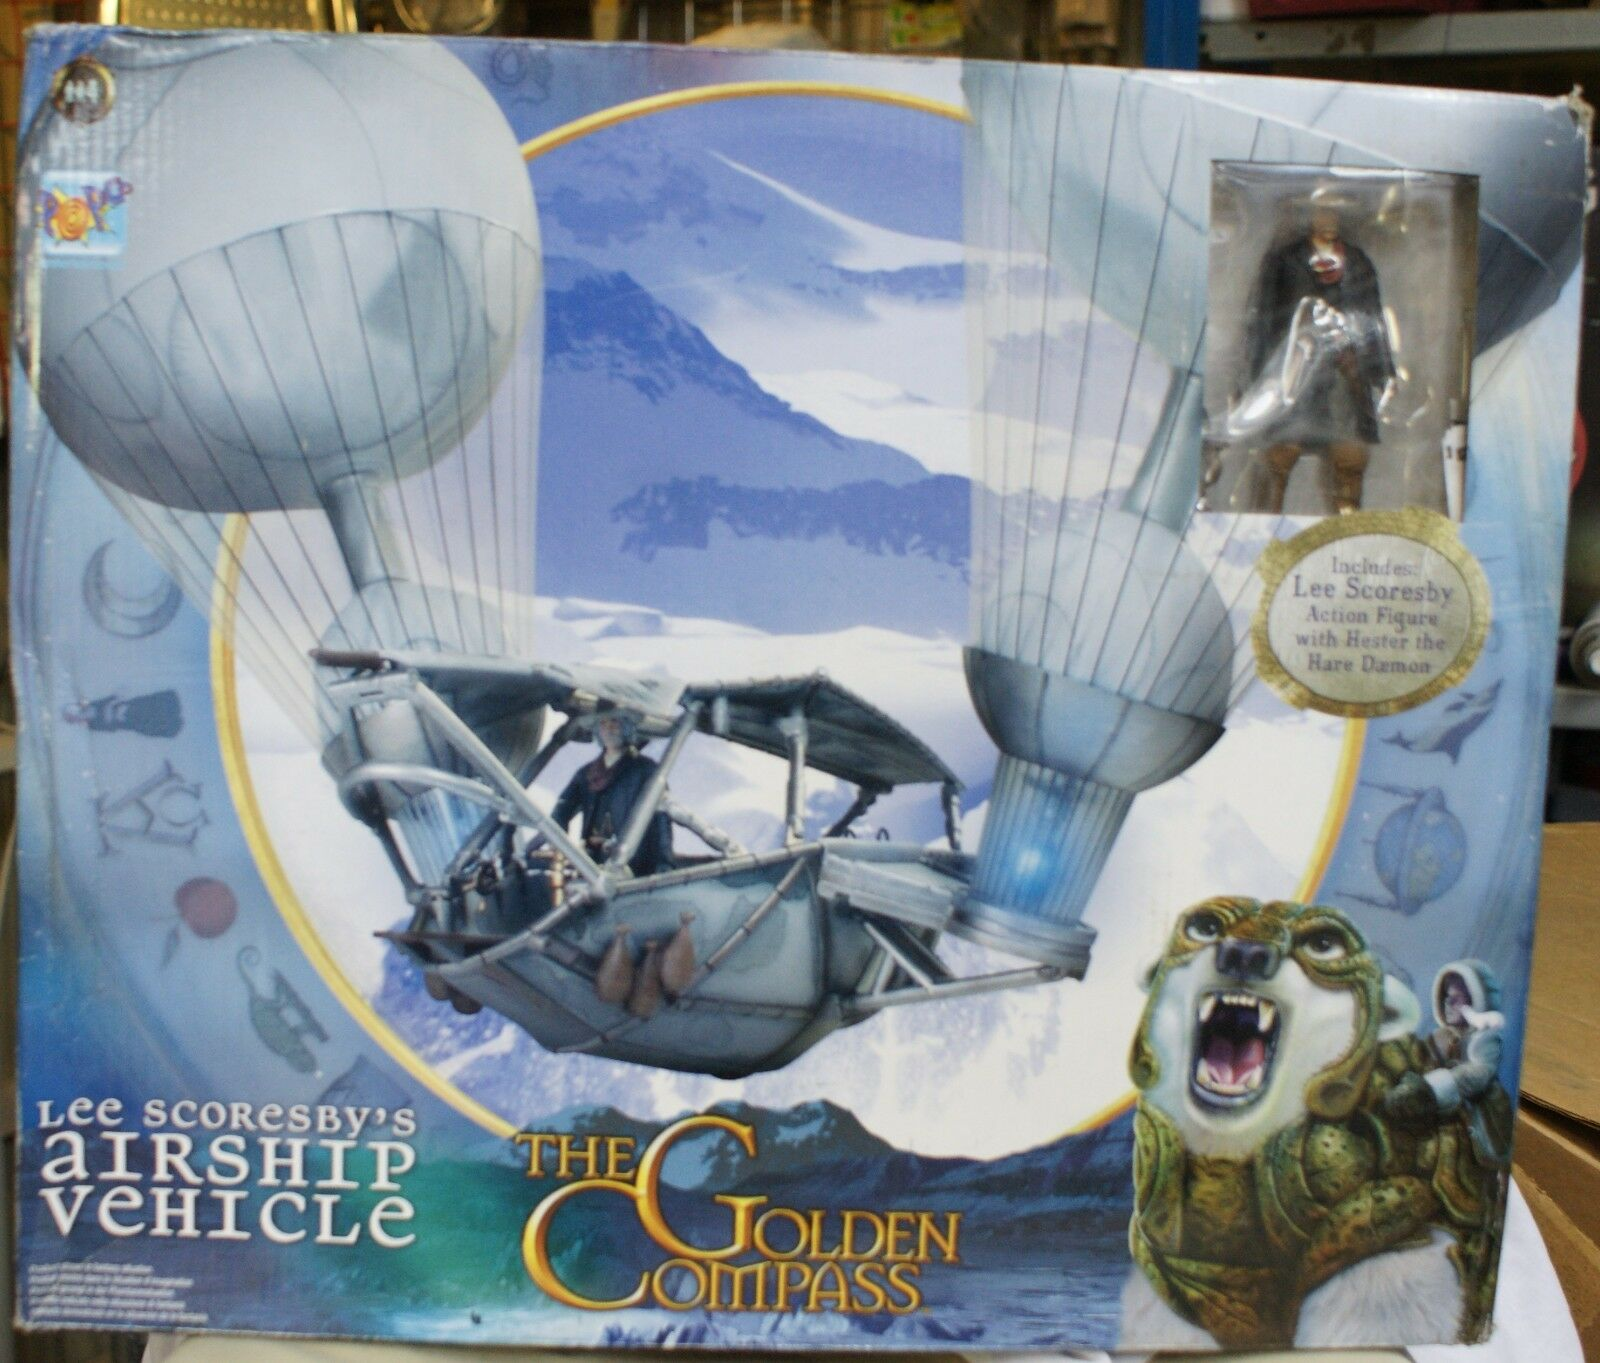 Golden Compass Airship Vehicle Lee Scoresby Figure Aeronaut Balloon playset